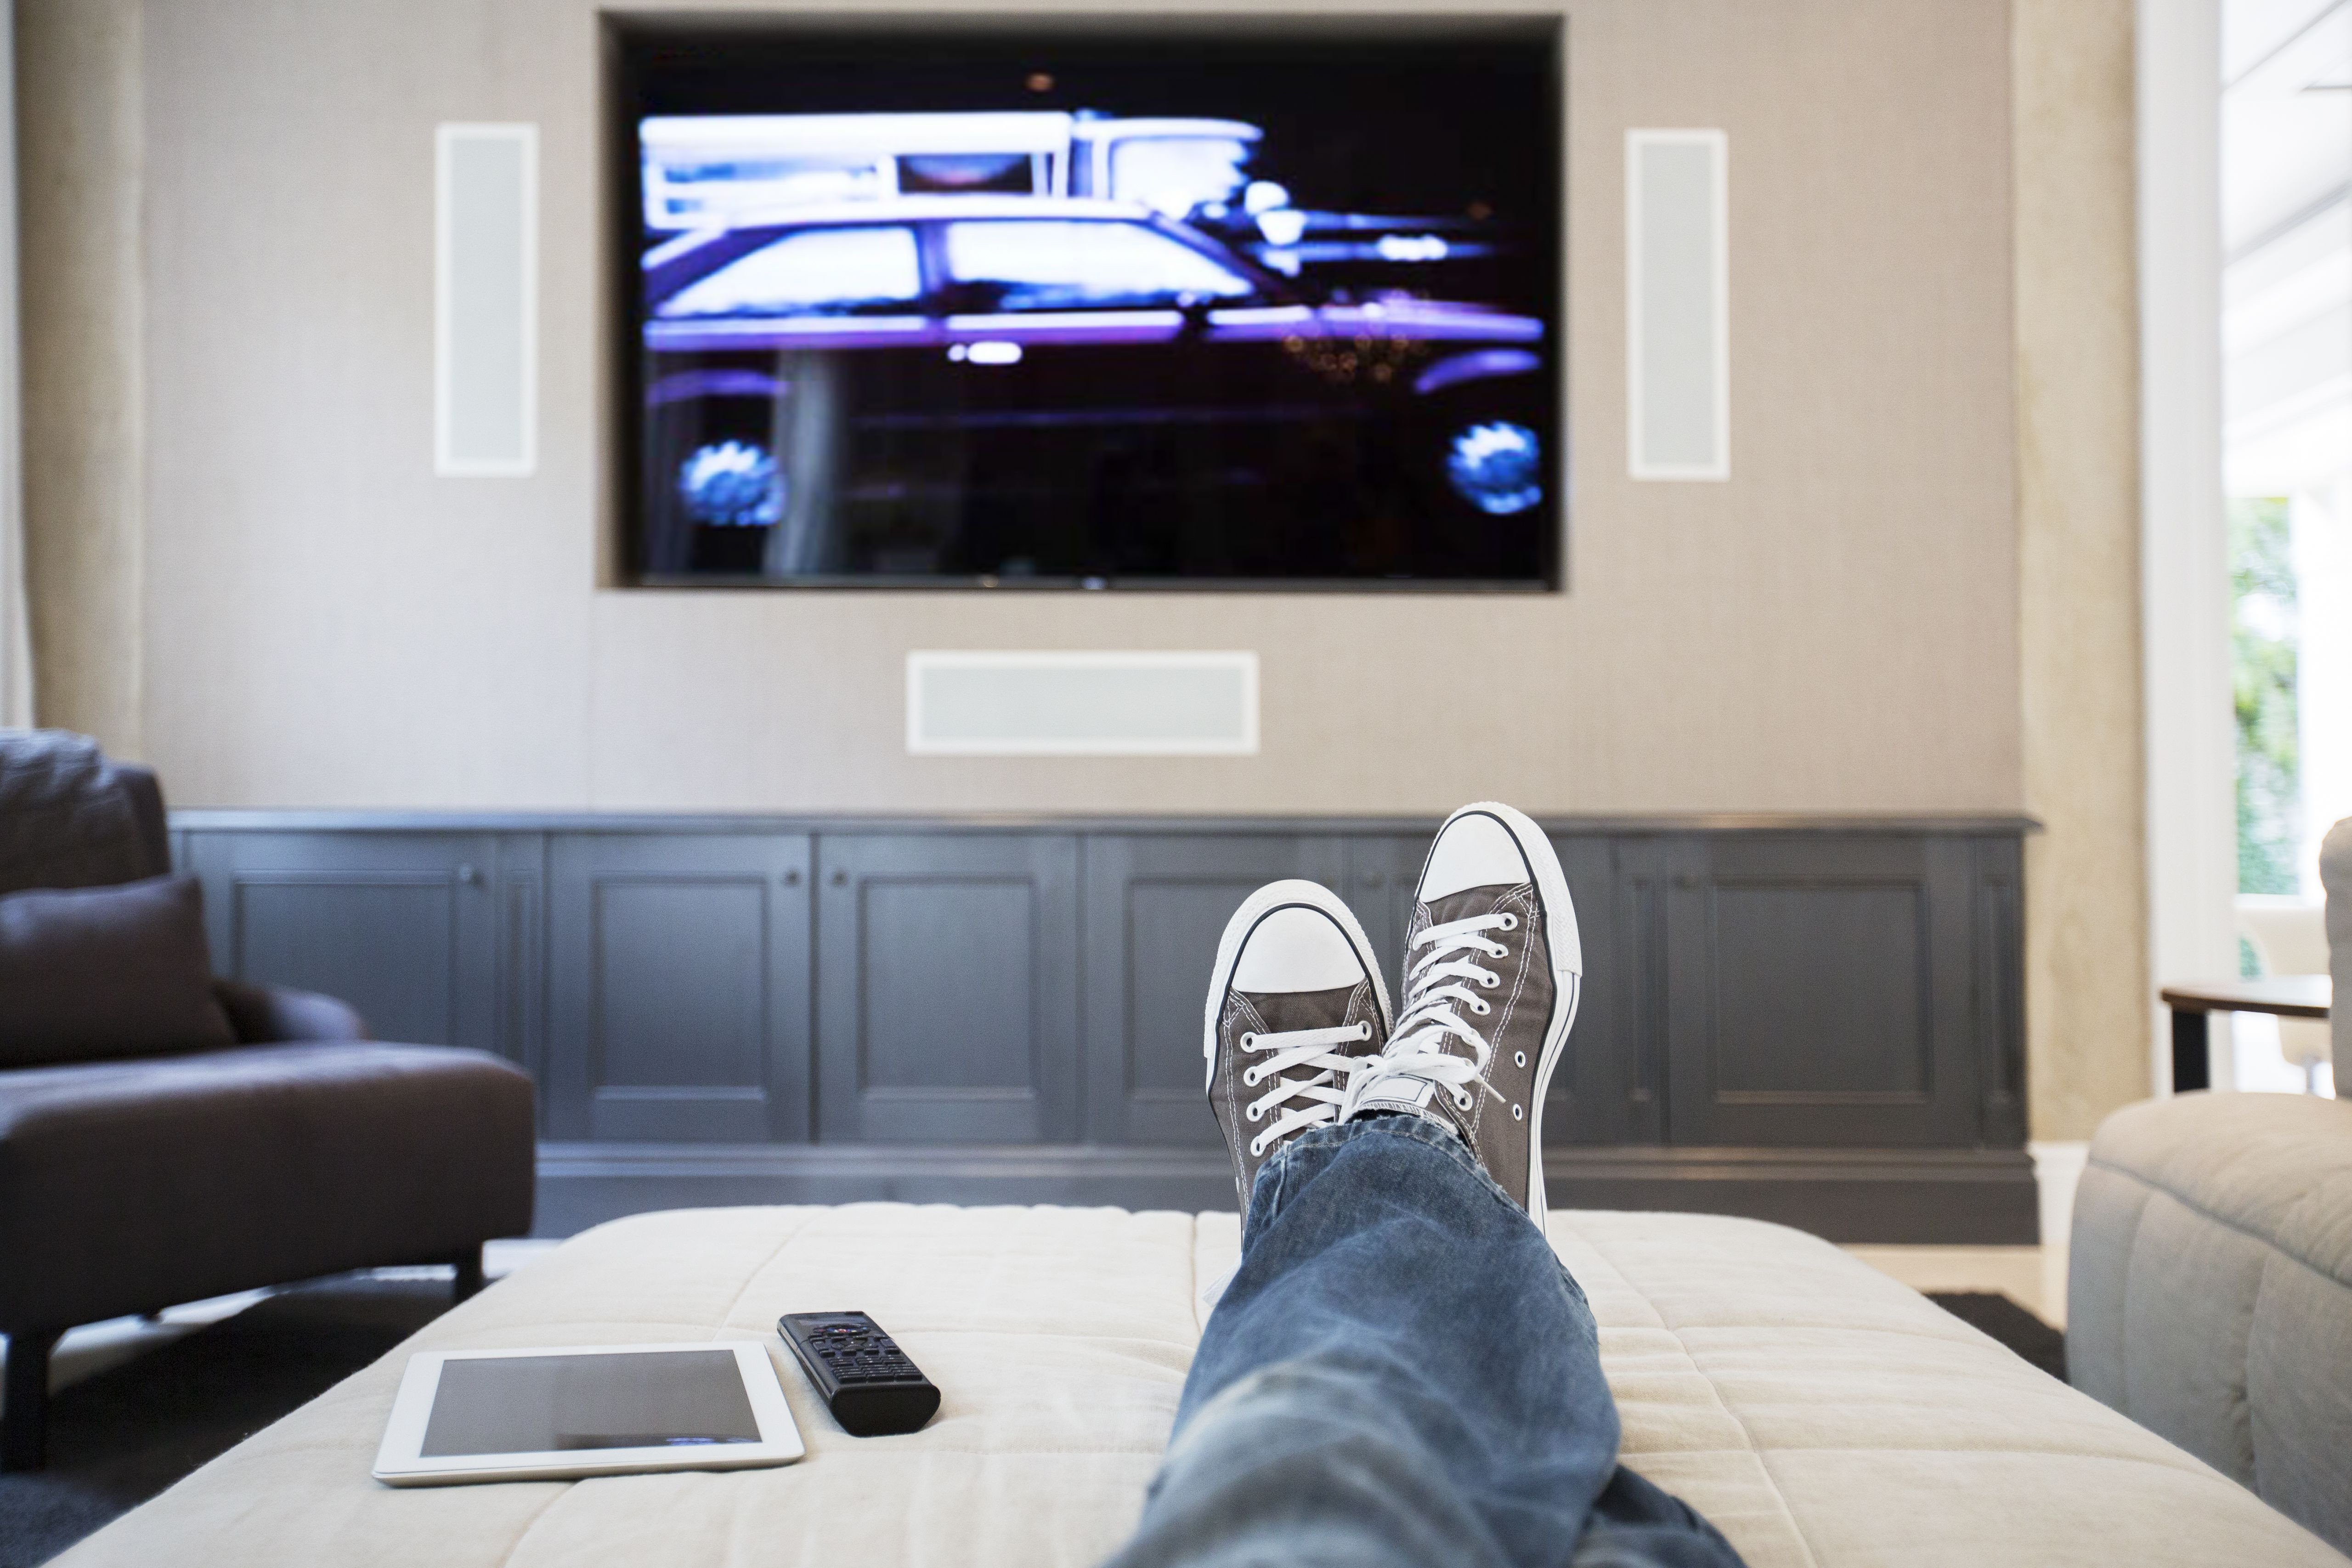 Comfortable Living Roomfor Movie Watching What is the Best Viewing Distance to Watch A Tv From